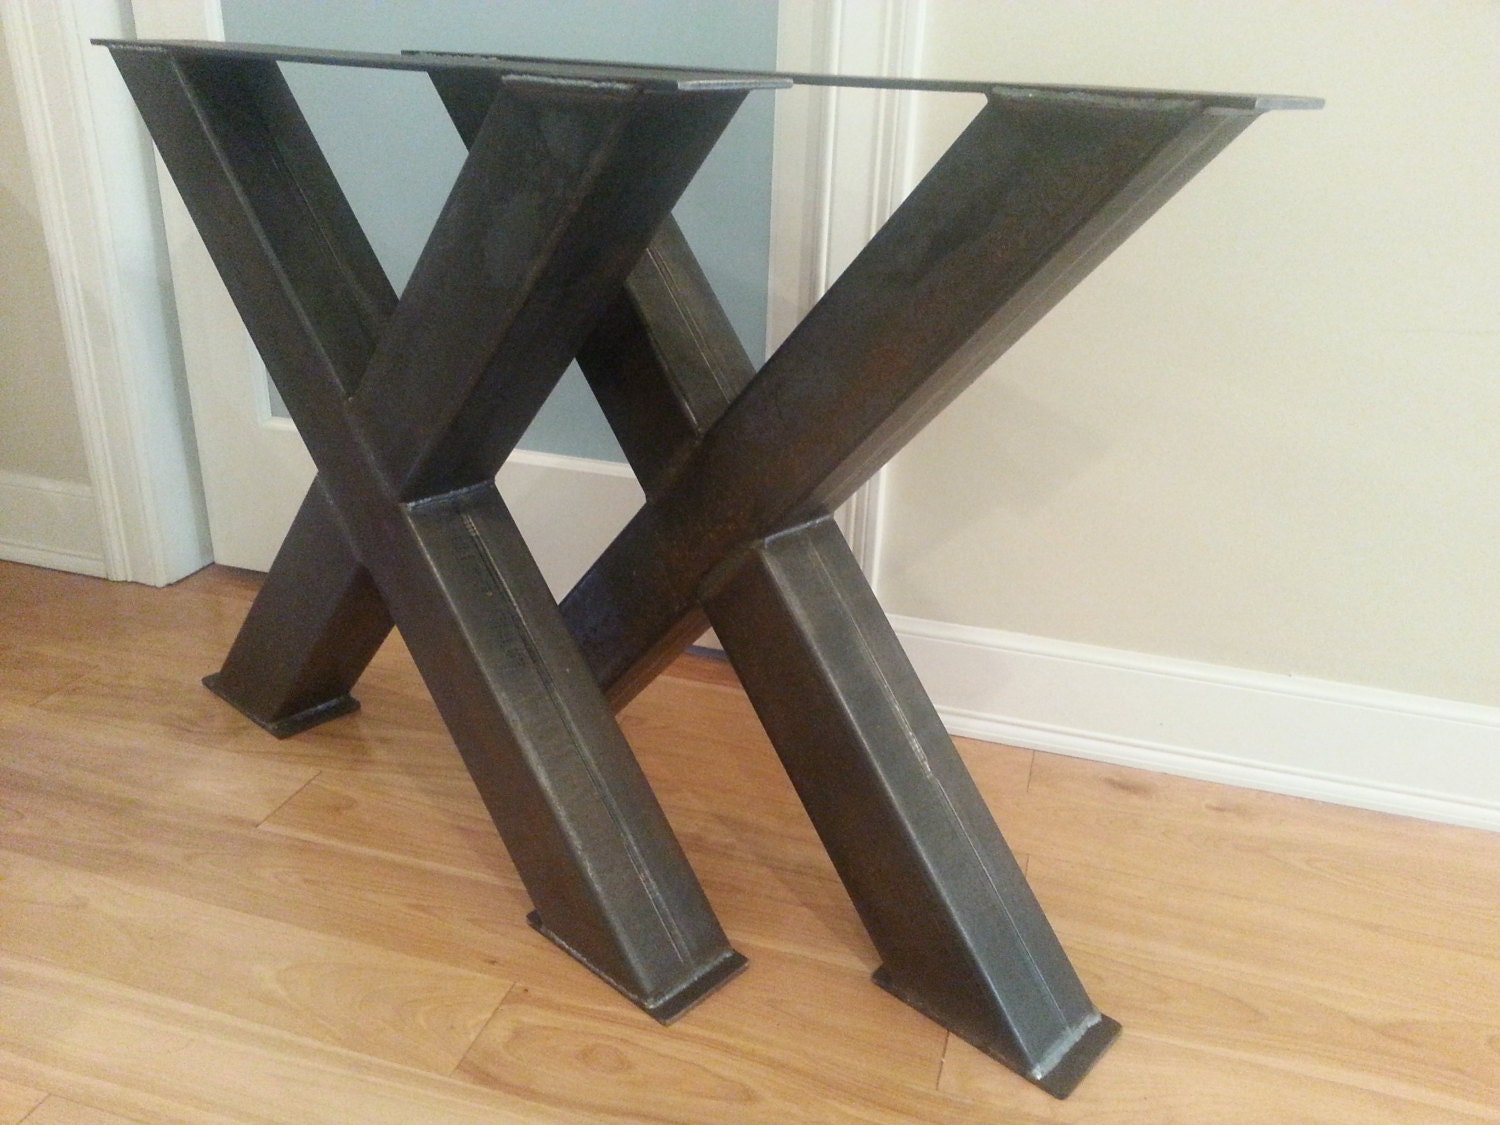 Metal table legs 4 steel table legs oversize x metal for What to use for table legs